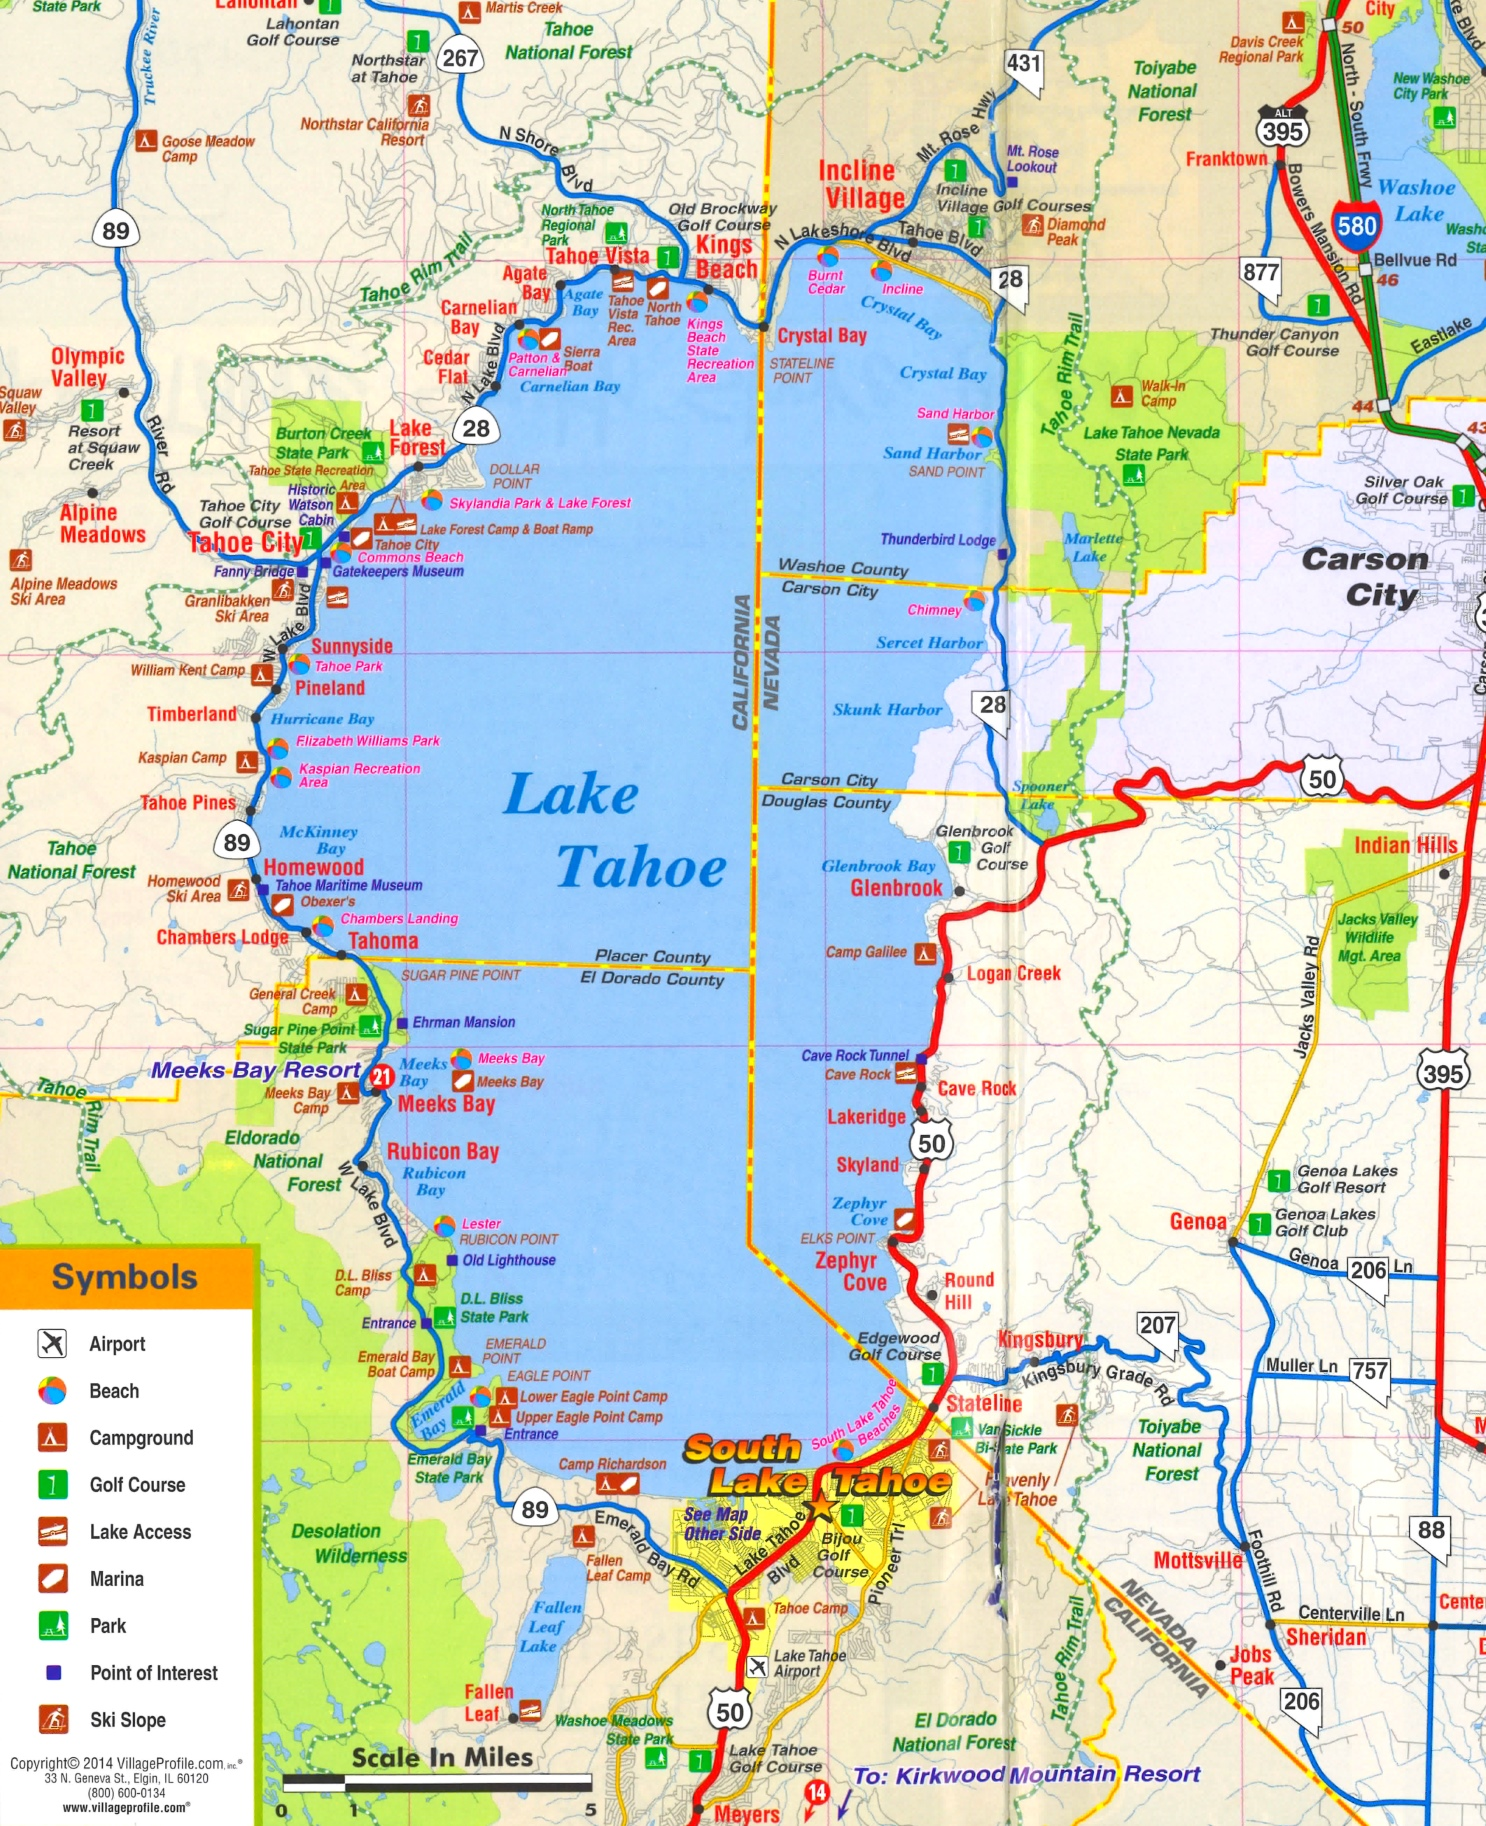 Lake Tahoe tourist attractions map on squaw valley map, lake berryessa map, lake winnebago map, lake toho map, virginia city map, salt lake map, grand canyon map, truckee river map, lake taho, lopez lake map, united states map, rocky mountains map, california map, carson city map, san bernardino mountains map, pyramid lake map, lakes in arizona map, los angeles map, mammoth lakes map, nevada map,